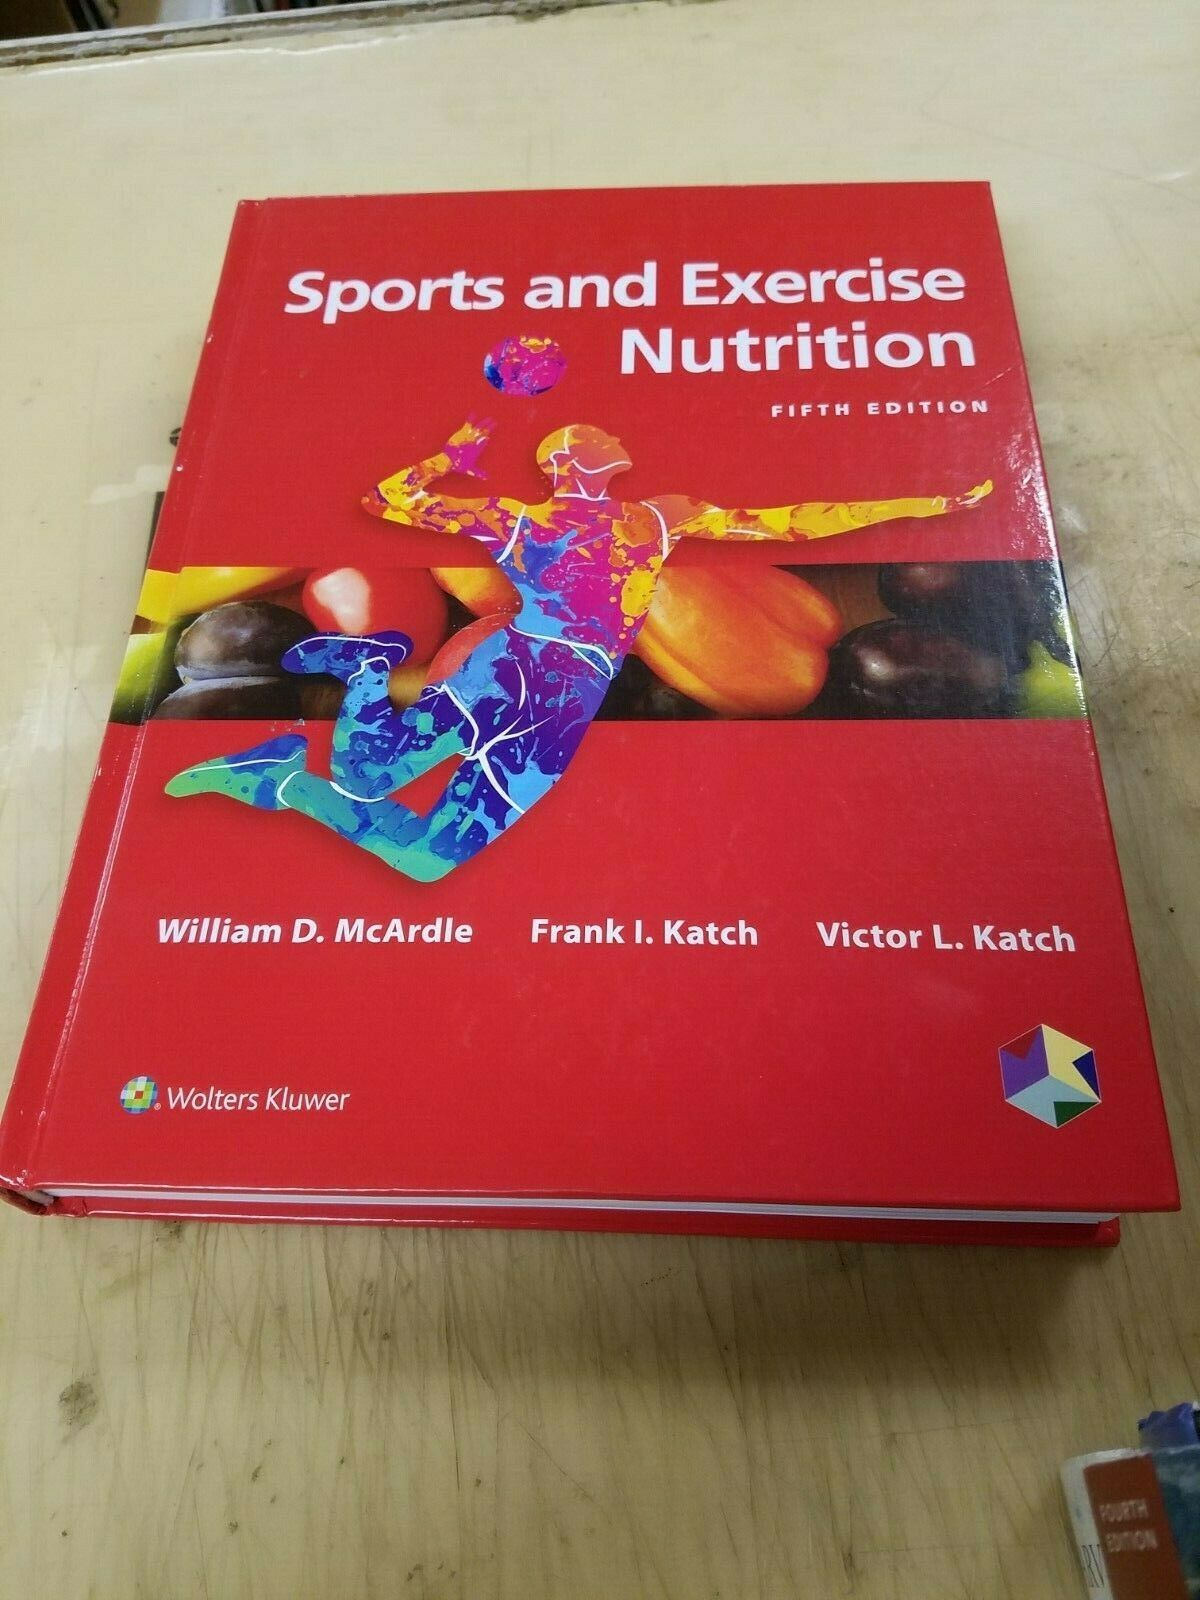 Sports And Exercise Nutrition By William D Mcardle 2019 Hardcover Revised Edition For Sale Online Ebay